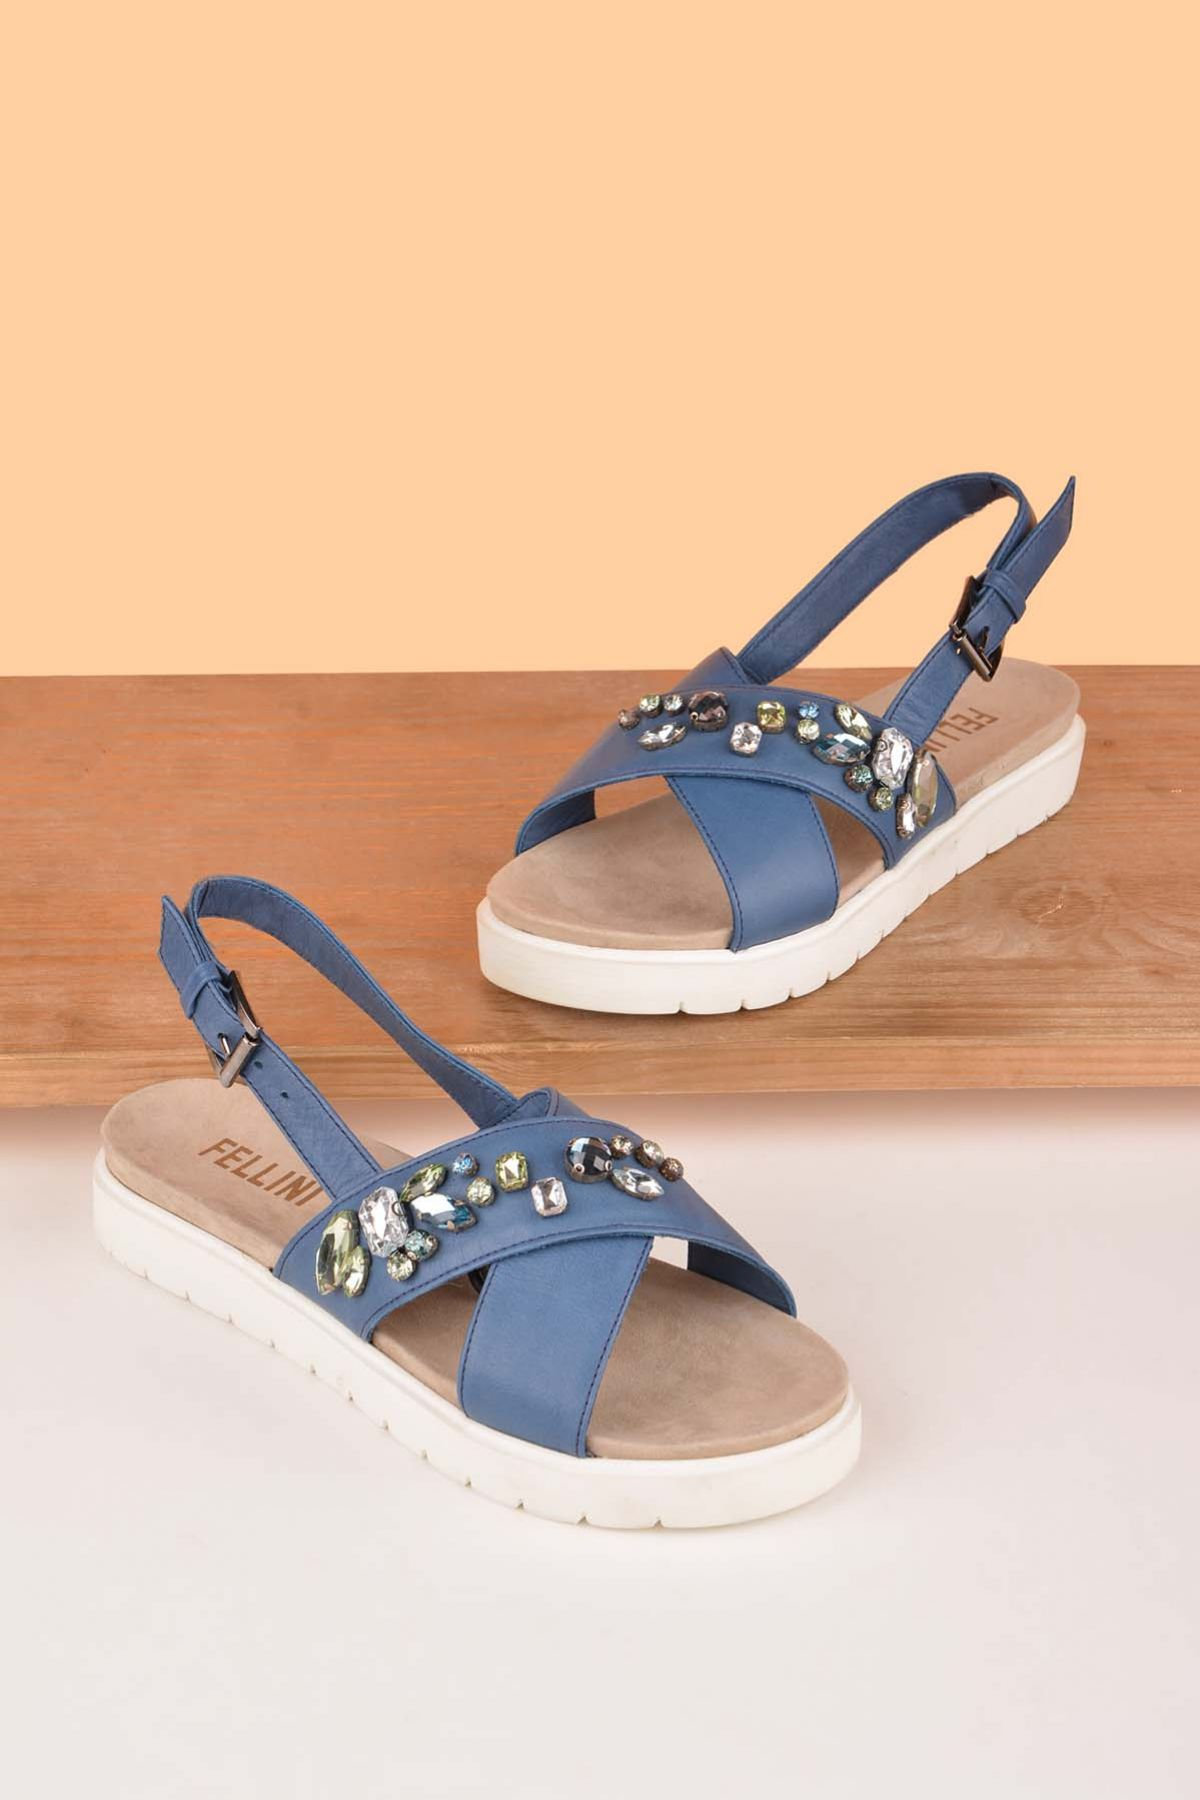 Fln Sandals From Genuine Leather Decorated With Stones Blue